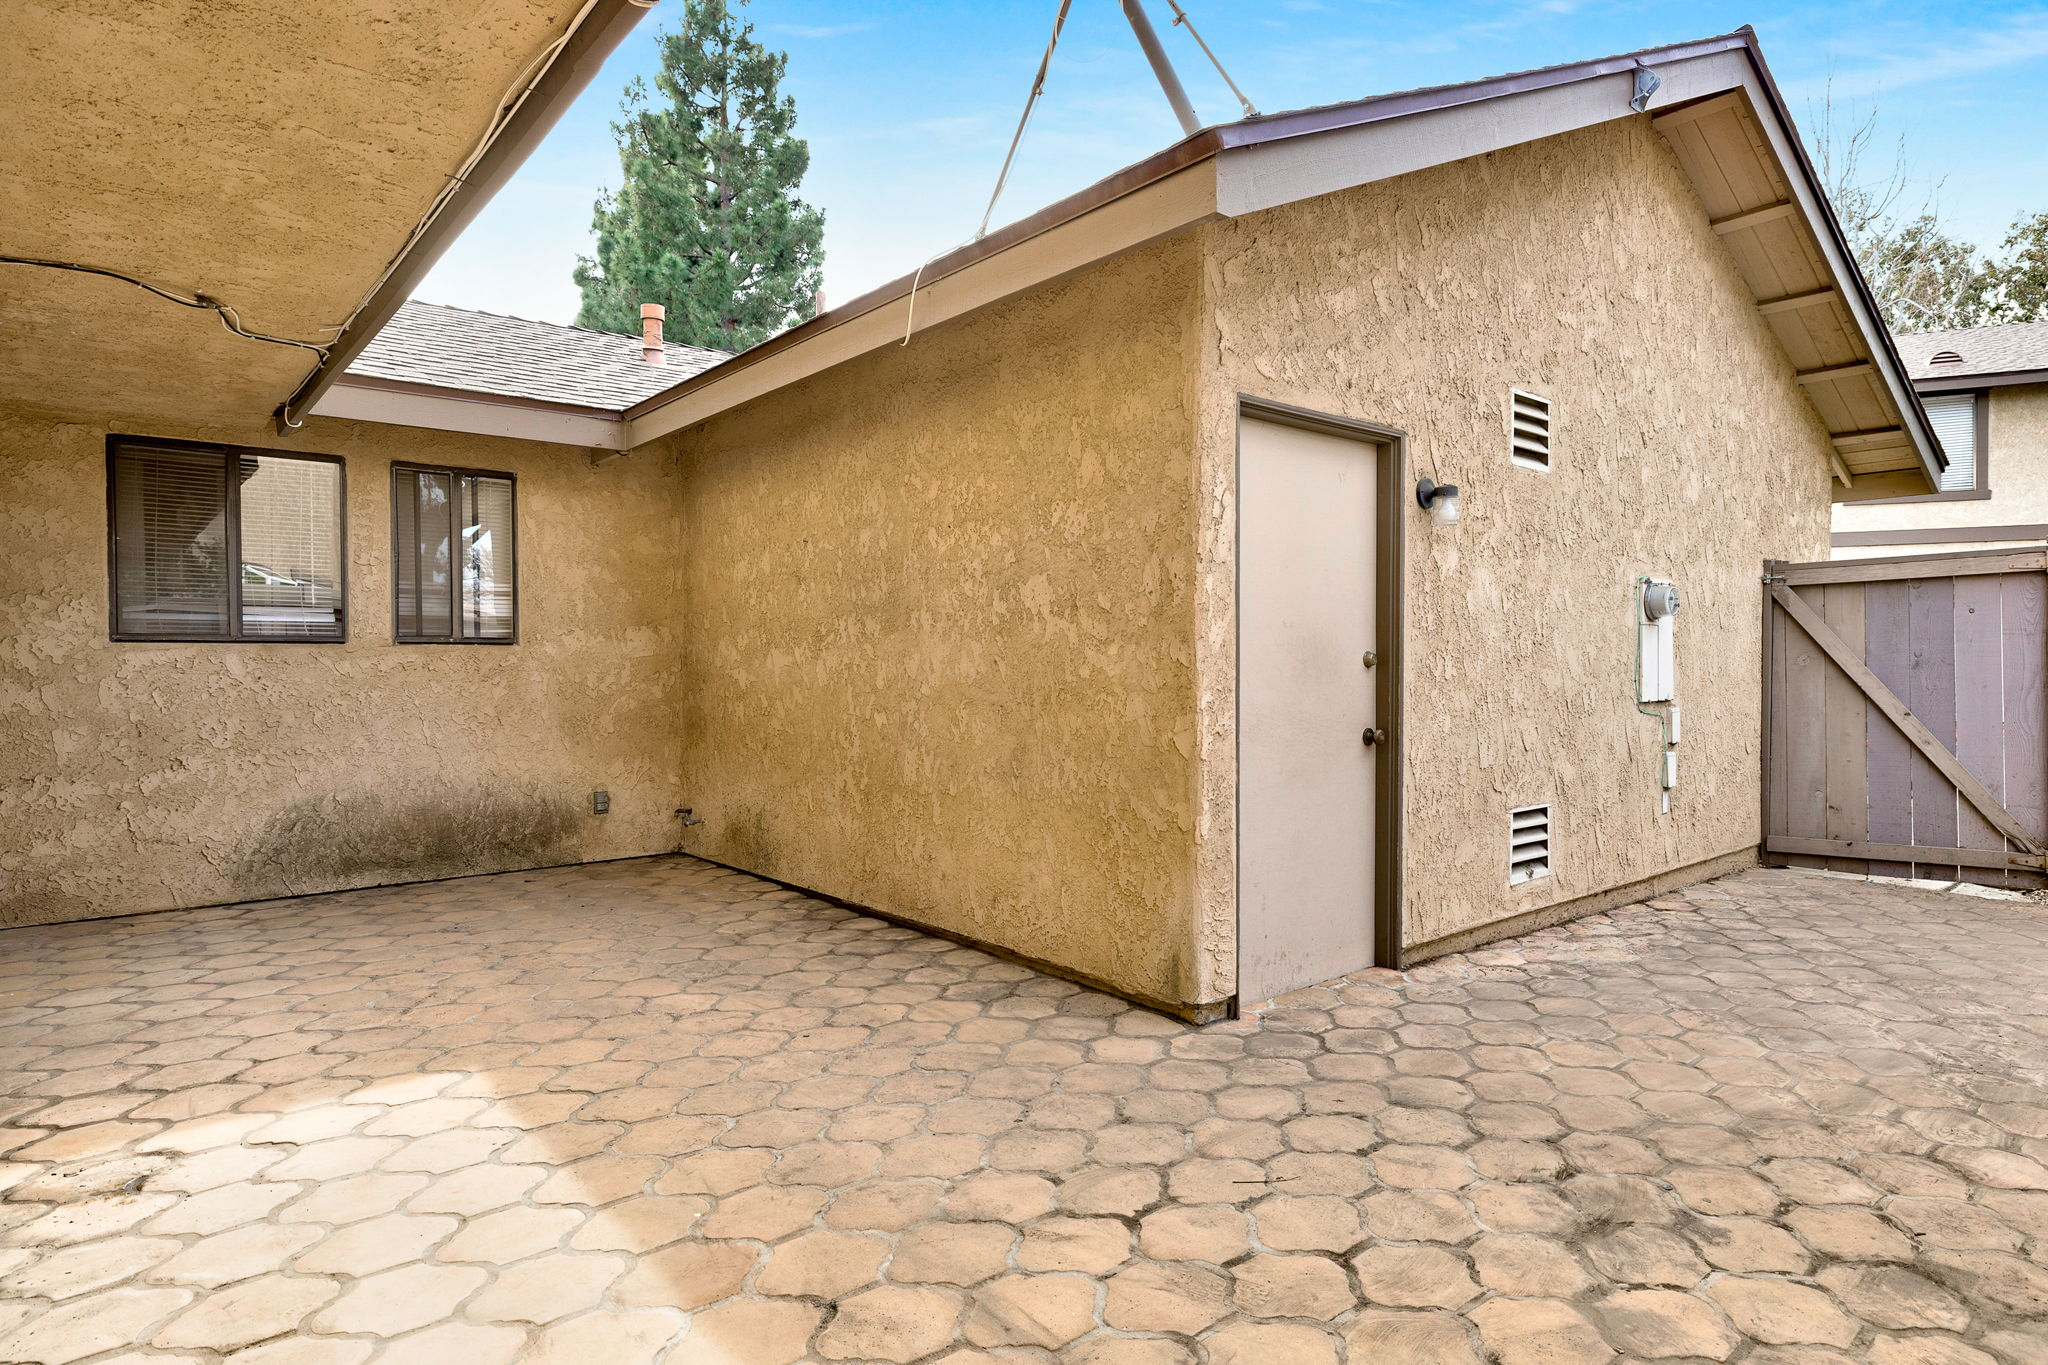 Patio with access to garage